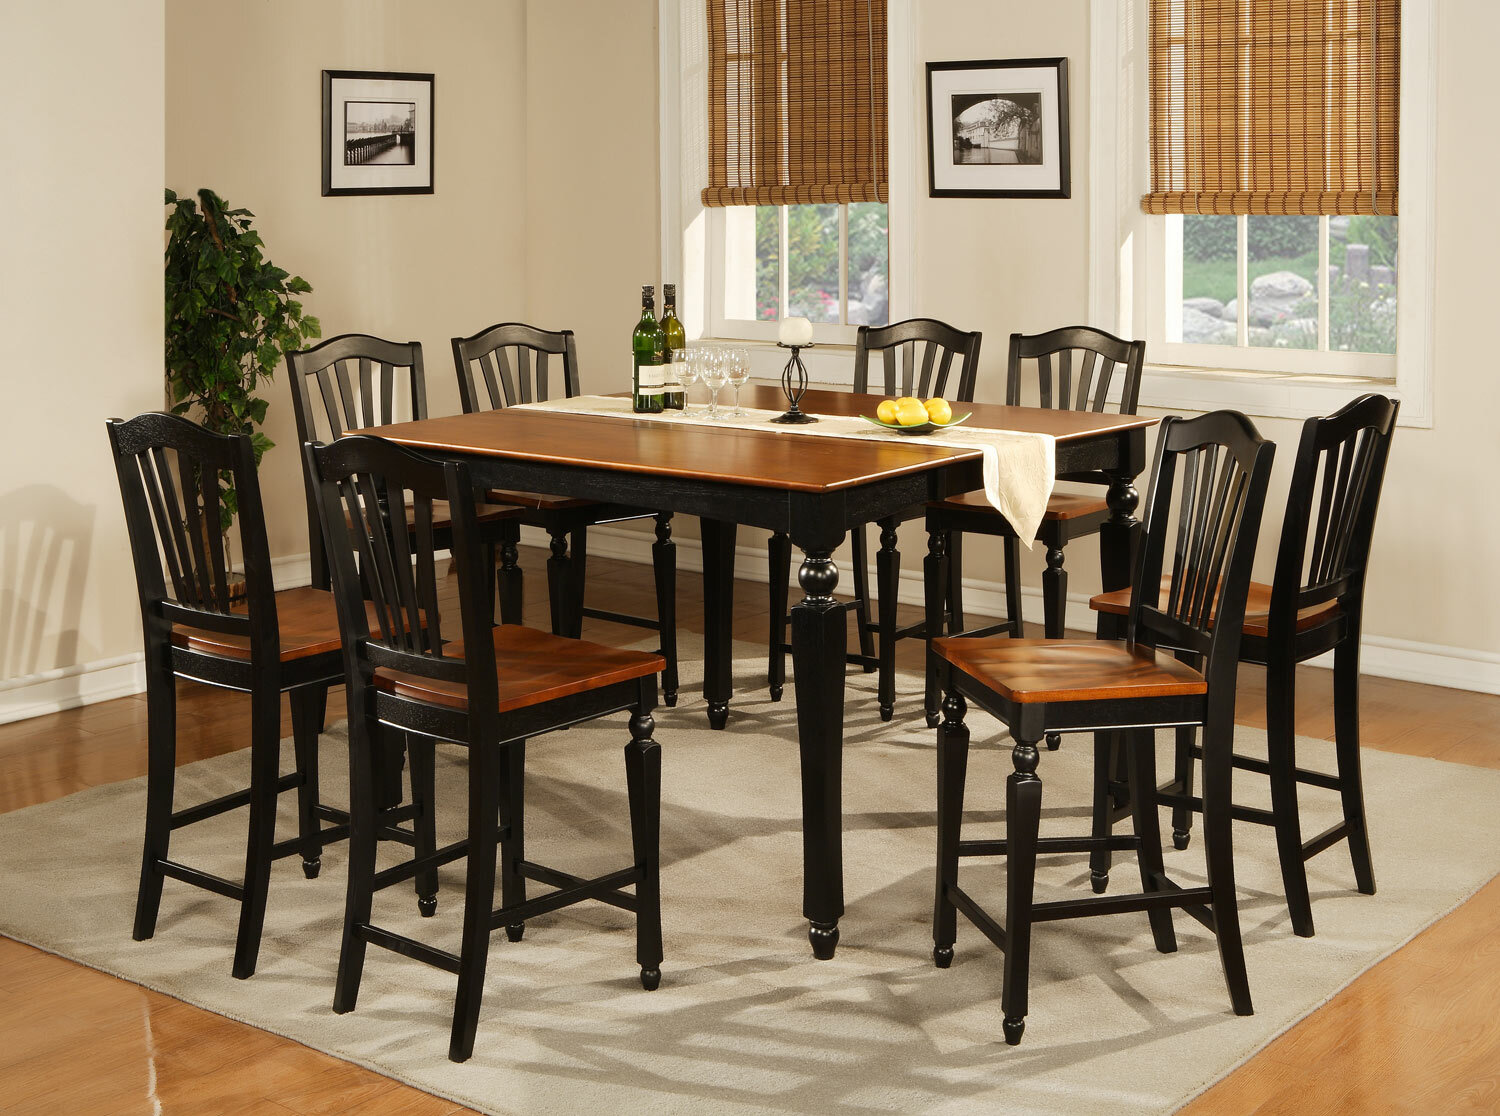 Delicieux Darby Home Co Ashworth 9 Piece Counter Height Pub Table Set